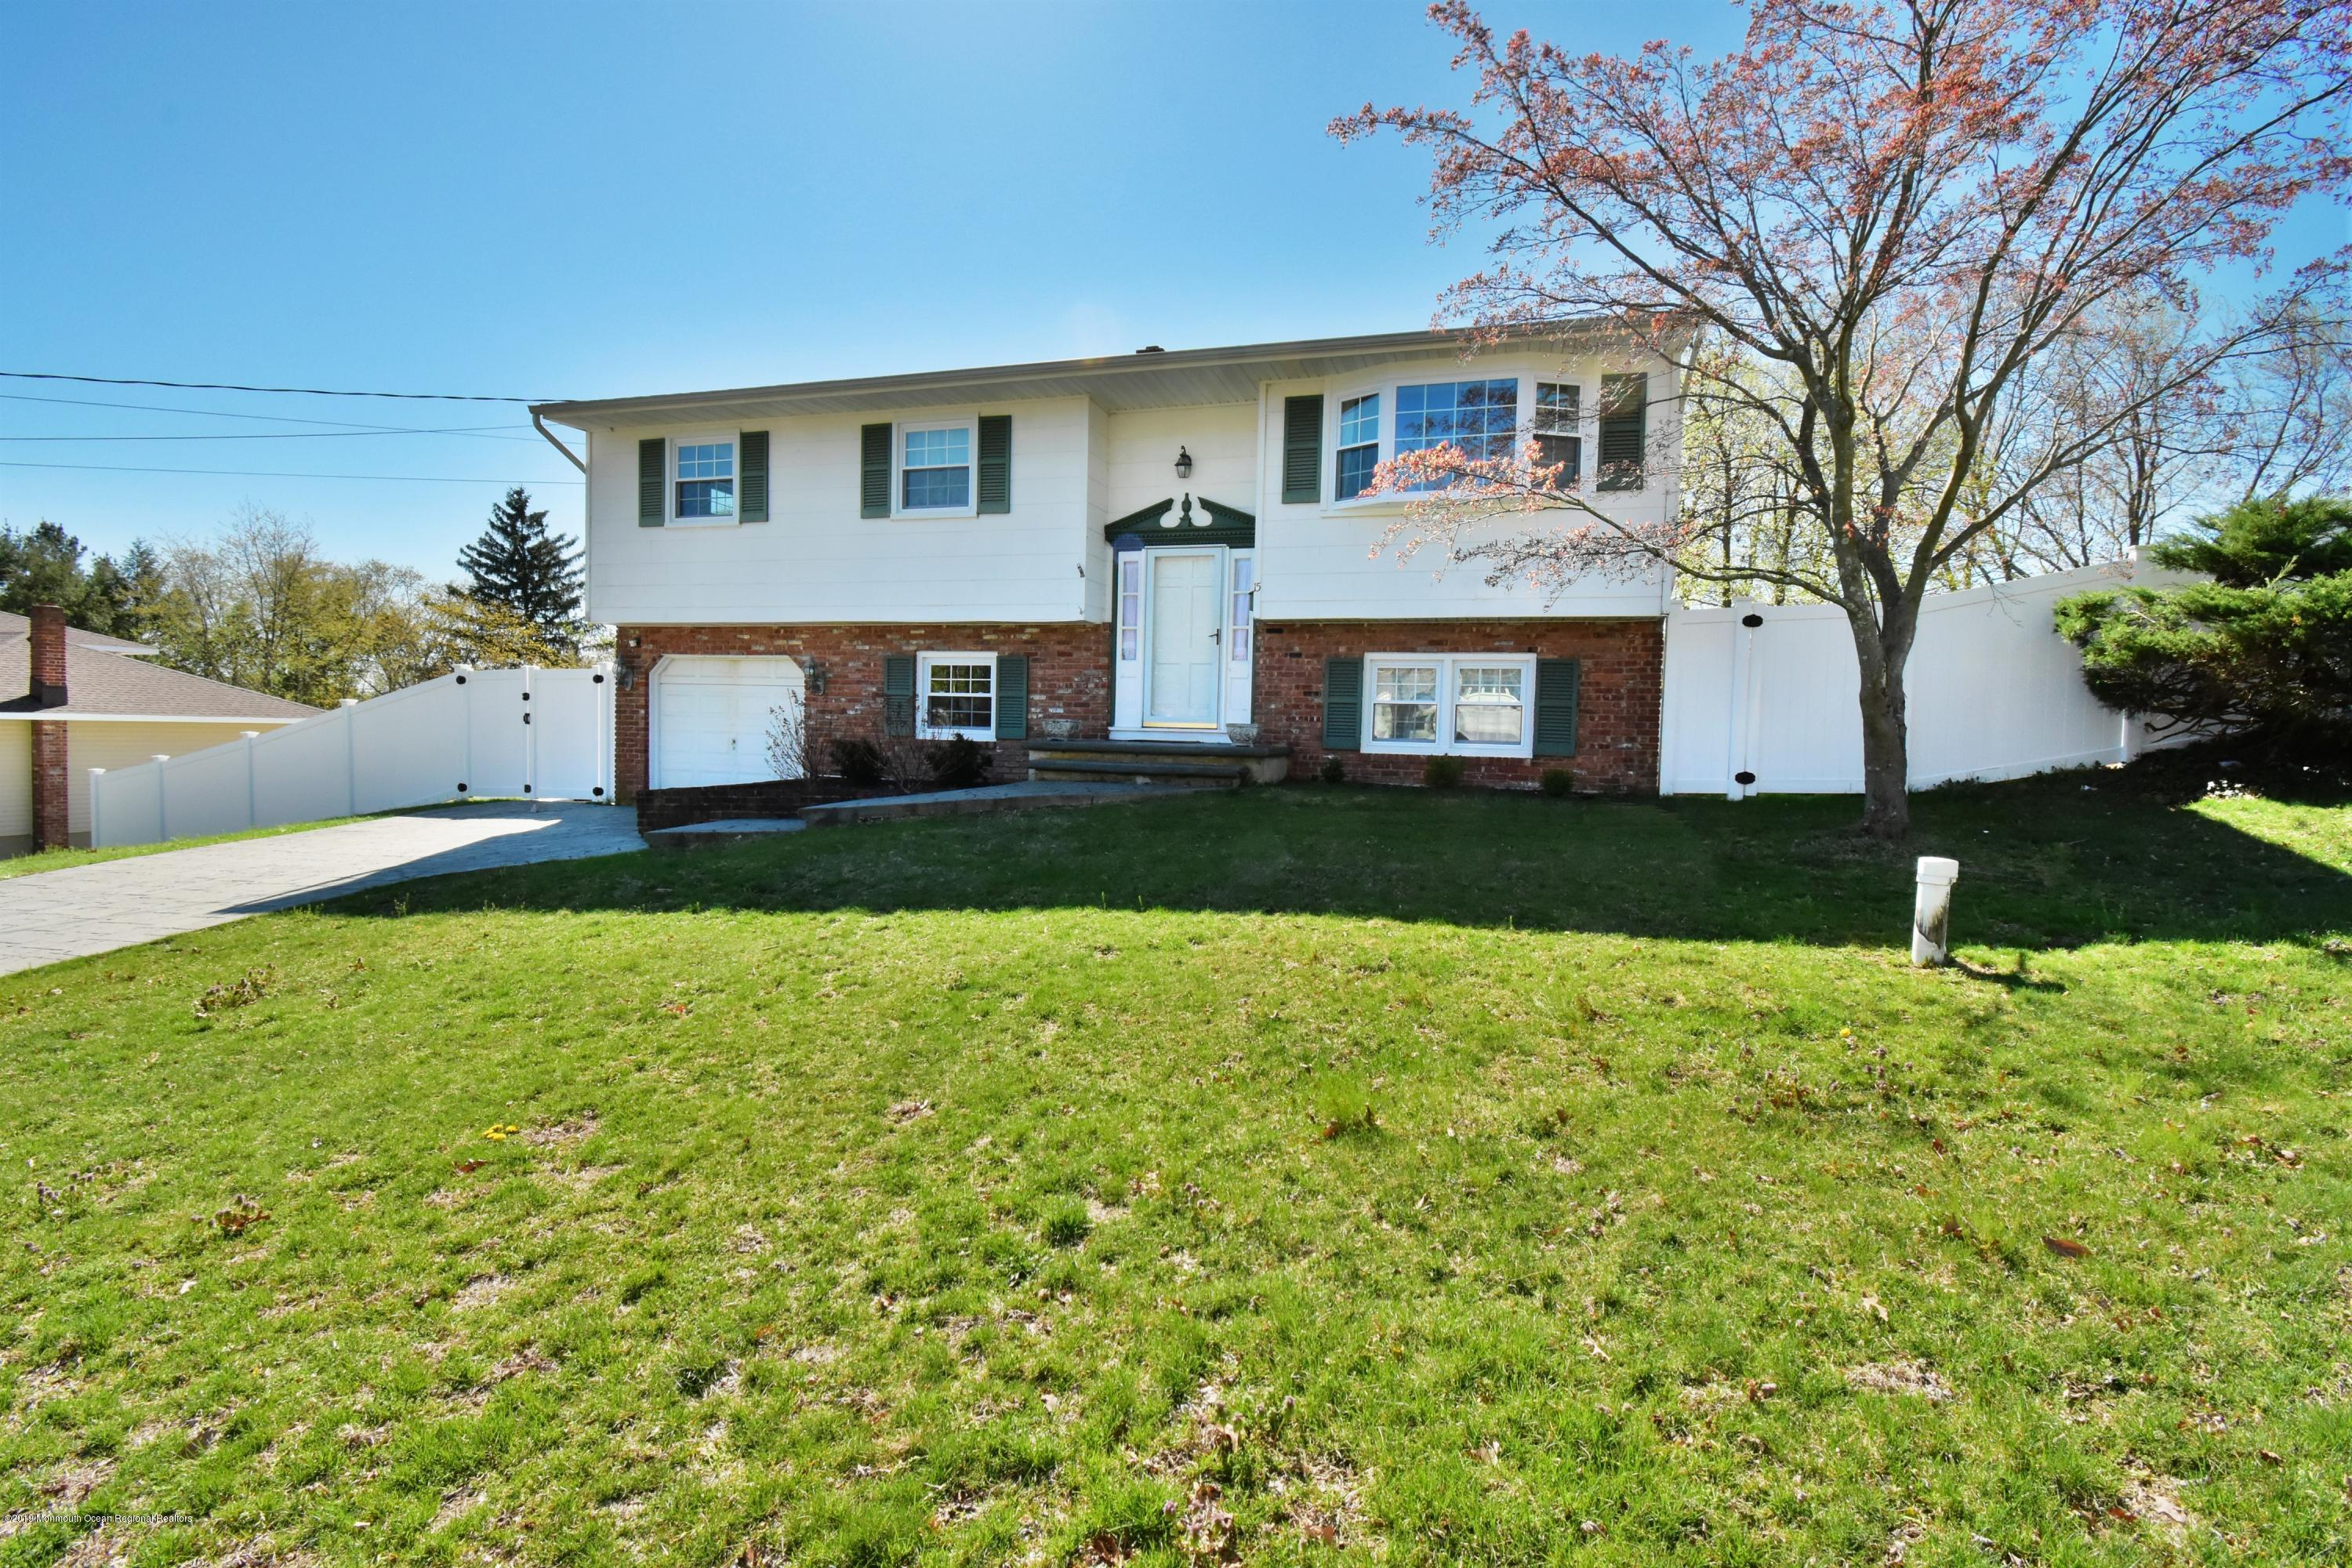 Photo of 15 Lexington Road, Howell, NJ 07731